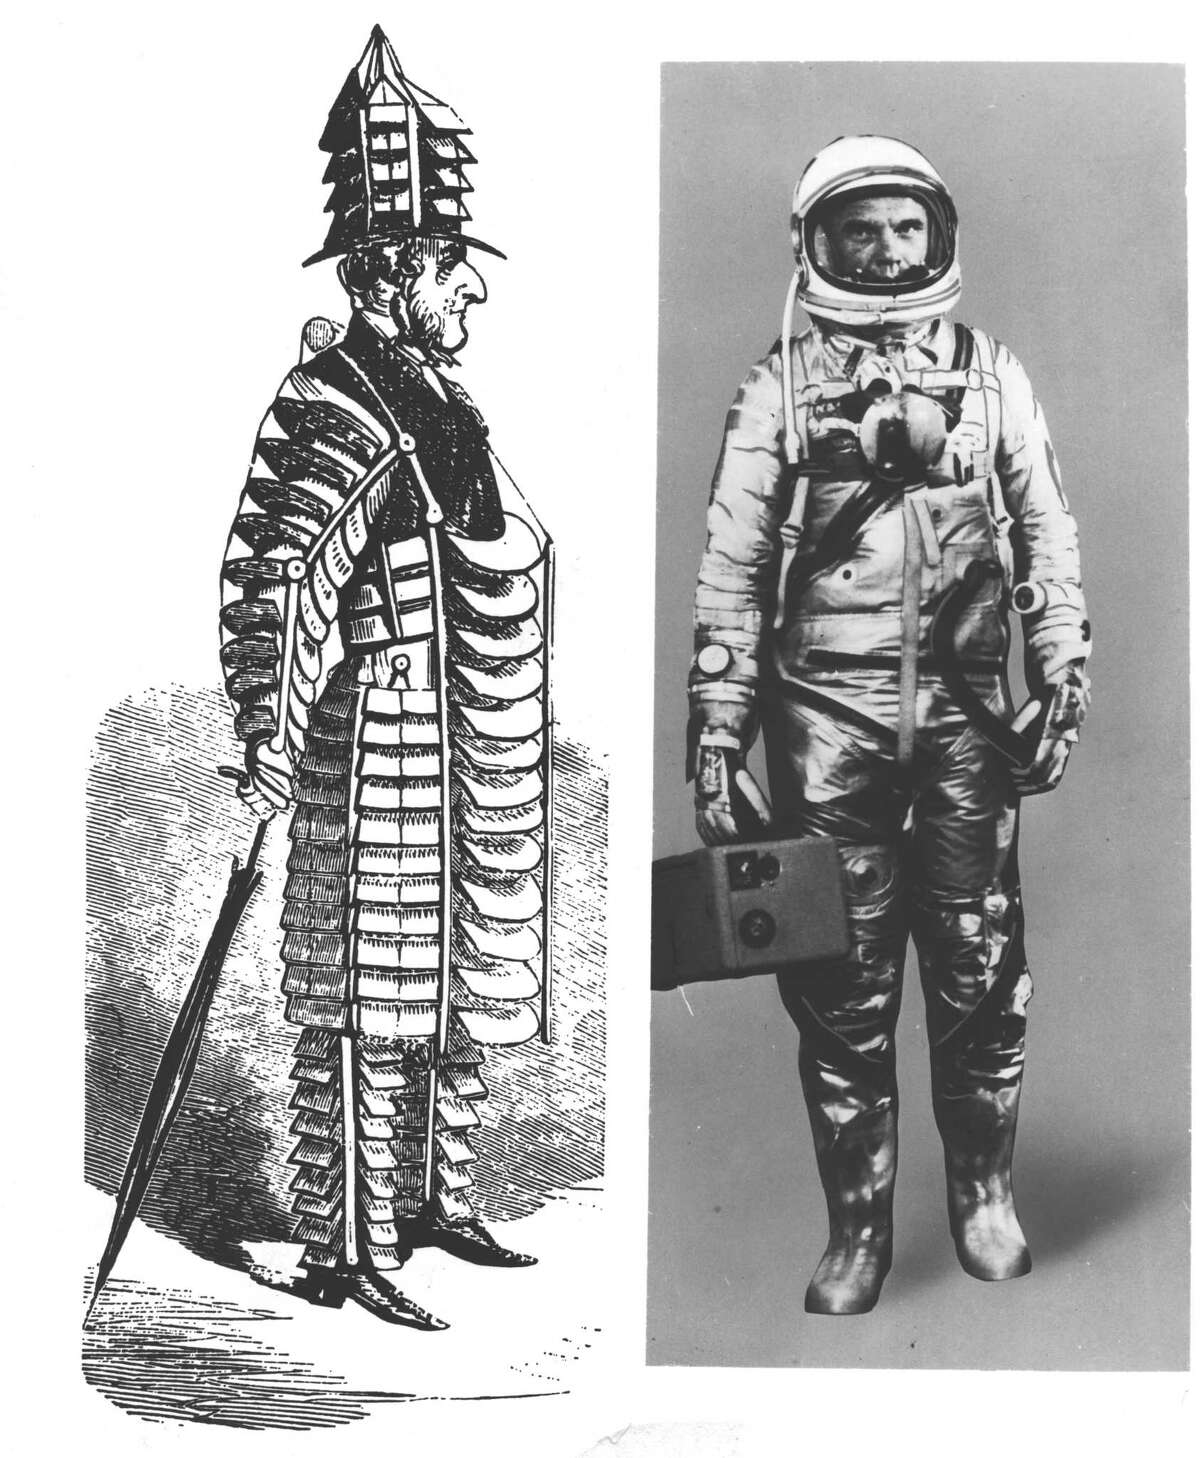 (05/29/1964): The idea of air-conditioned clothing long intrigued man, with results like the far-fetched application at the left. It wasn't until the arrival of the space age that the idea finally became a reality. Col. John Glenn models a space suit air-conditioned by the electric unit in his right hand.